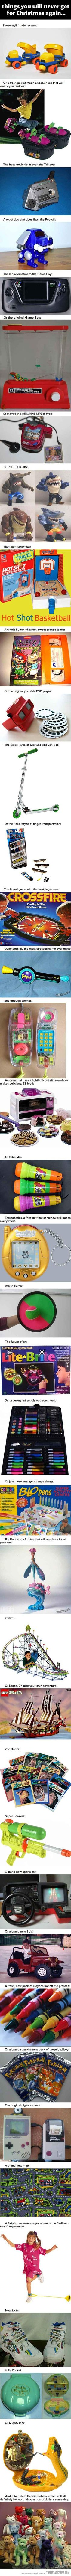 Oh my goodness!! I played with almost every single one of these. Good times...